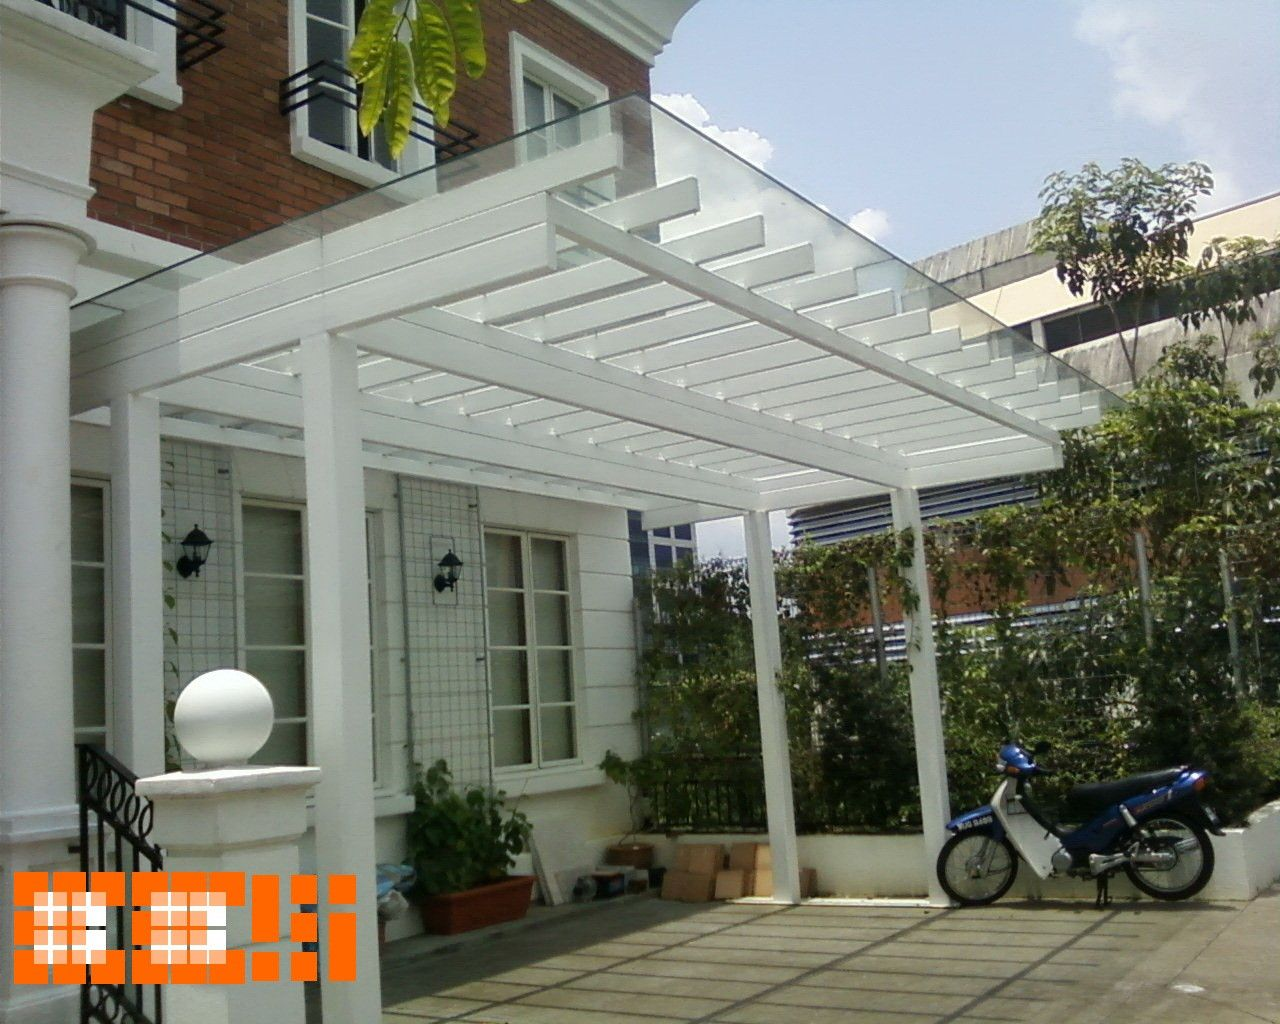 38 Images Of A Minimalist Home Canopy Model Kanopi Rumah Rumah